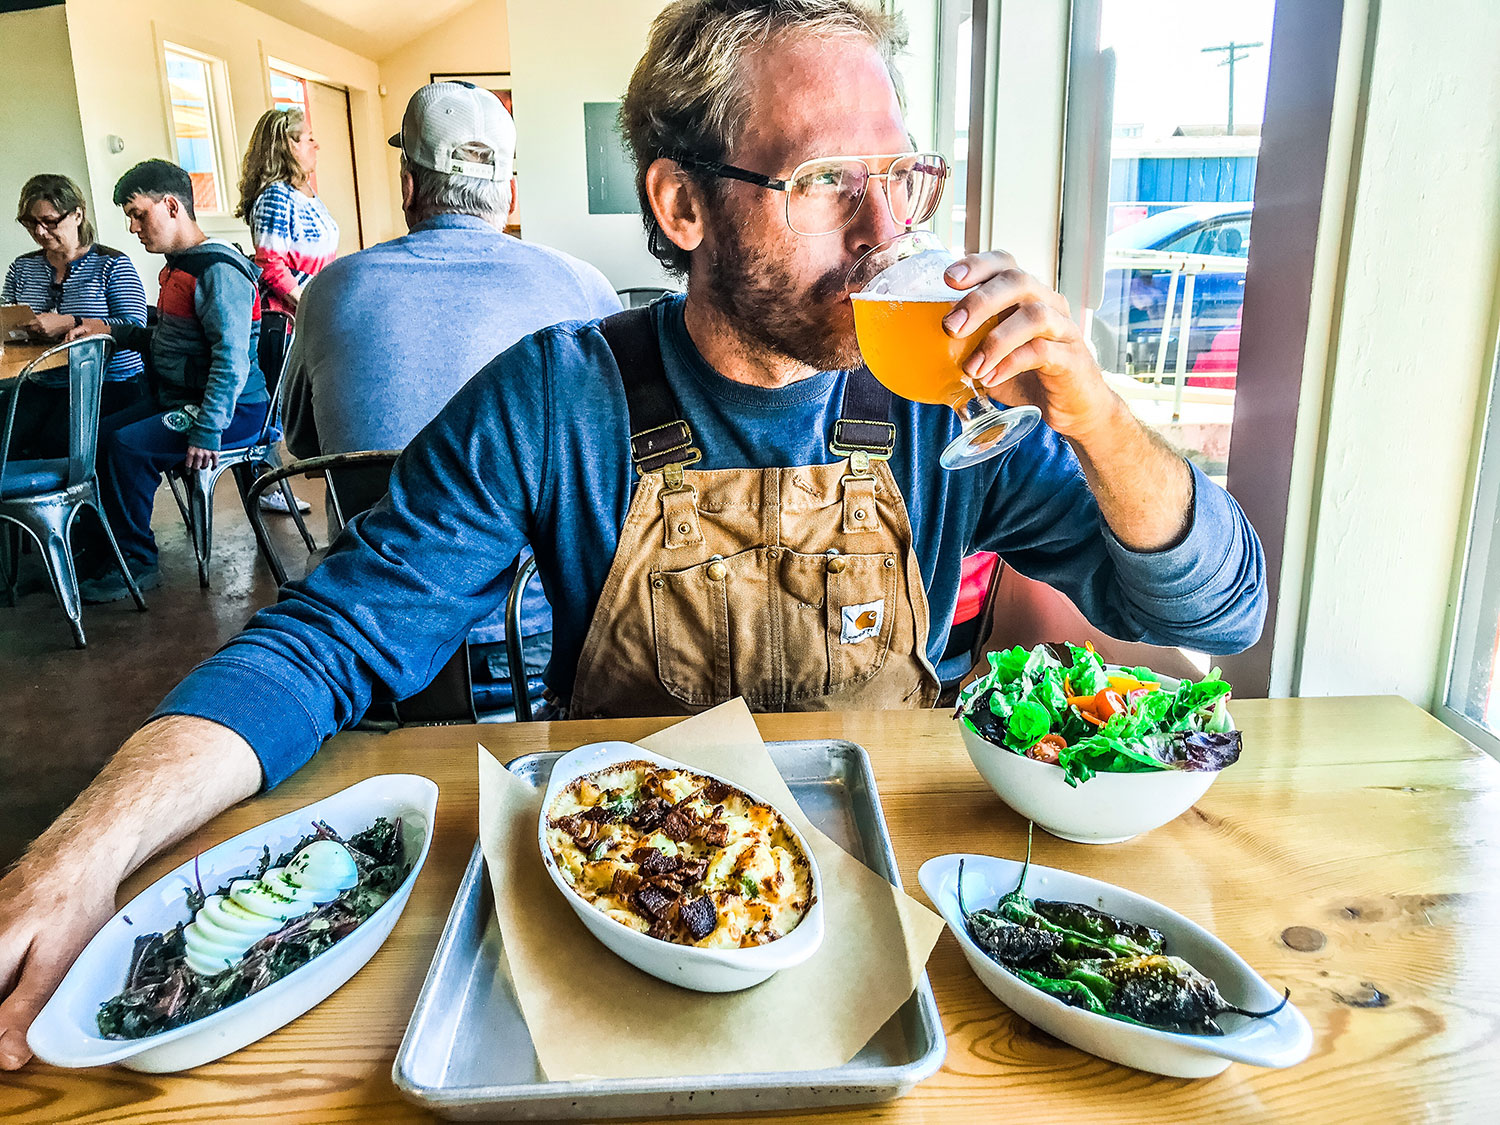 a man sits at Overtime Brewery drinking a beer with an array of dishes in front of him